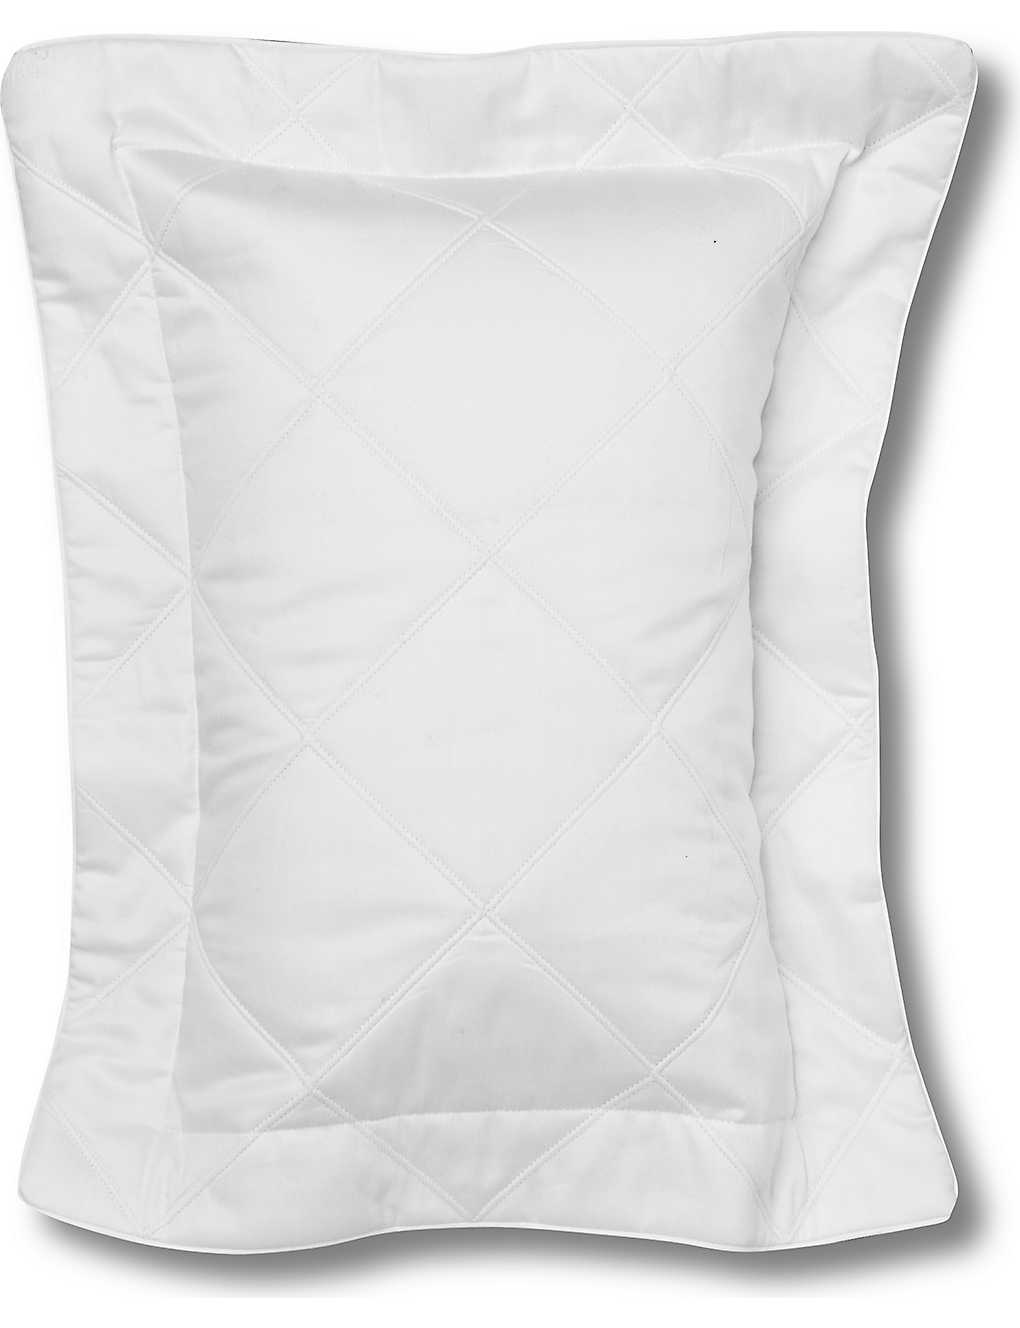 YVES DELORME - Triomphe quilted pillow case  c999e9b7f